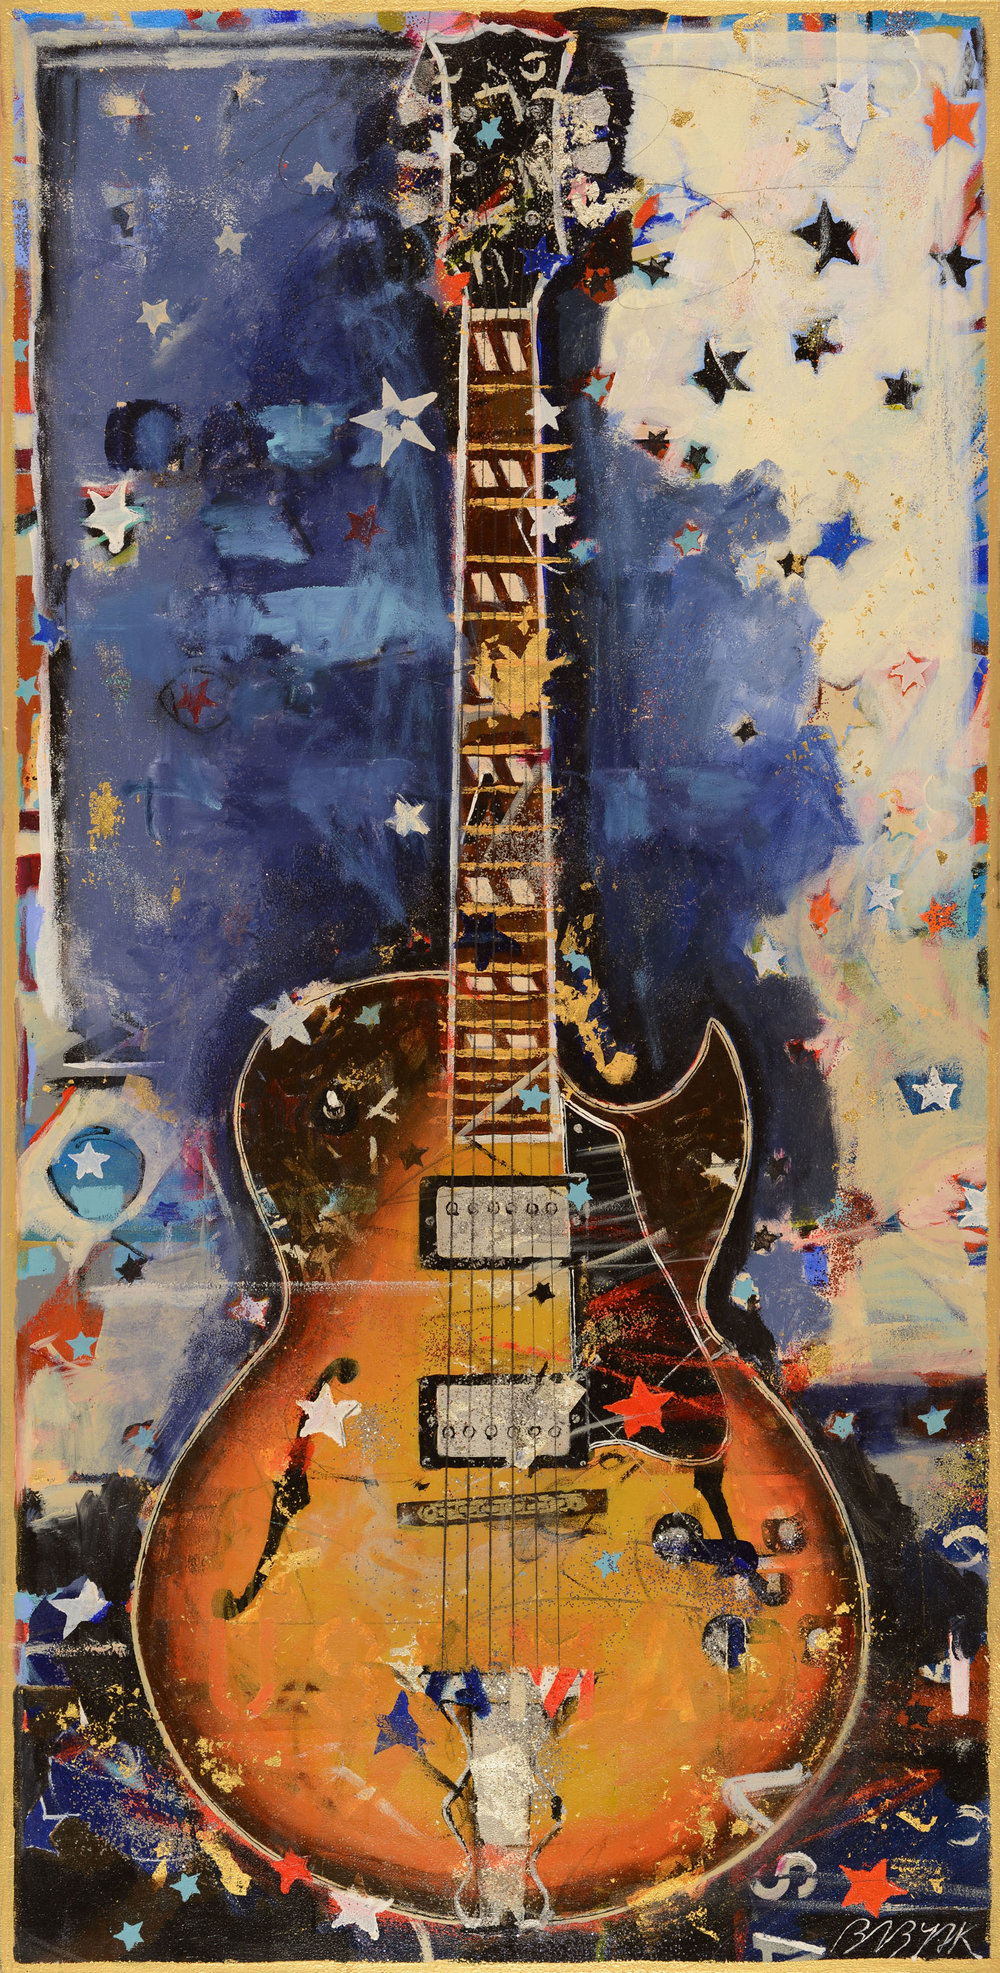 Tobaccoburst Hollowbody • 57 X 29 • Acrylic, graphite, glitter, 24K gold leaf on canvas